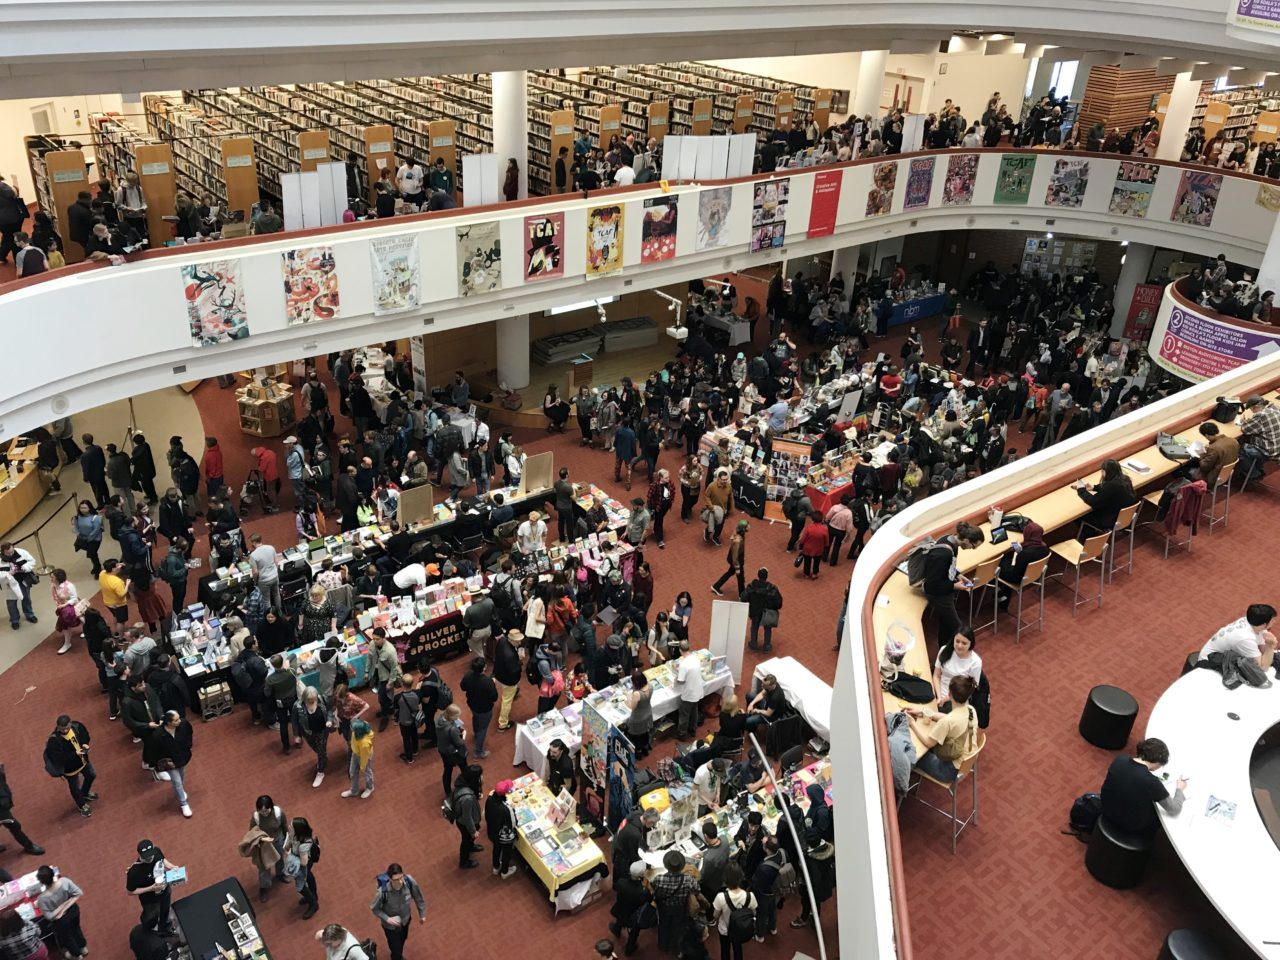 TCAF 2019. Photo by Louis Skye.